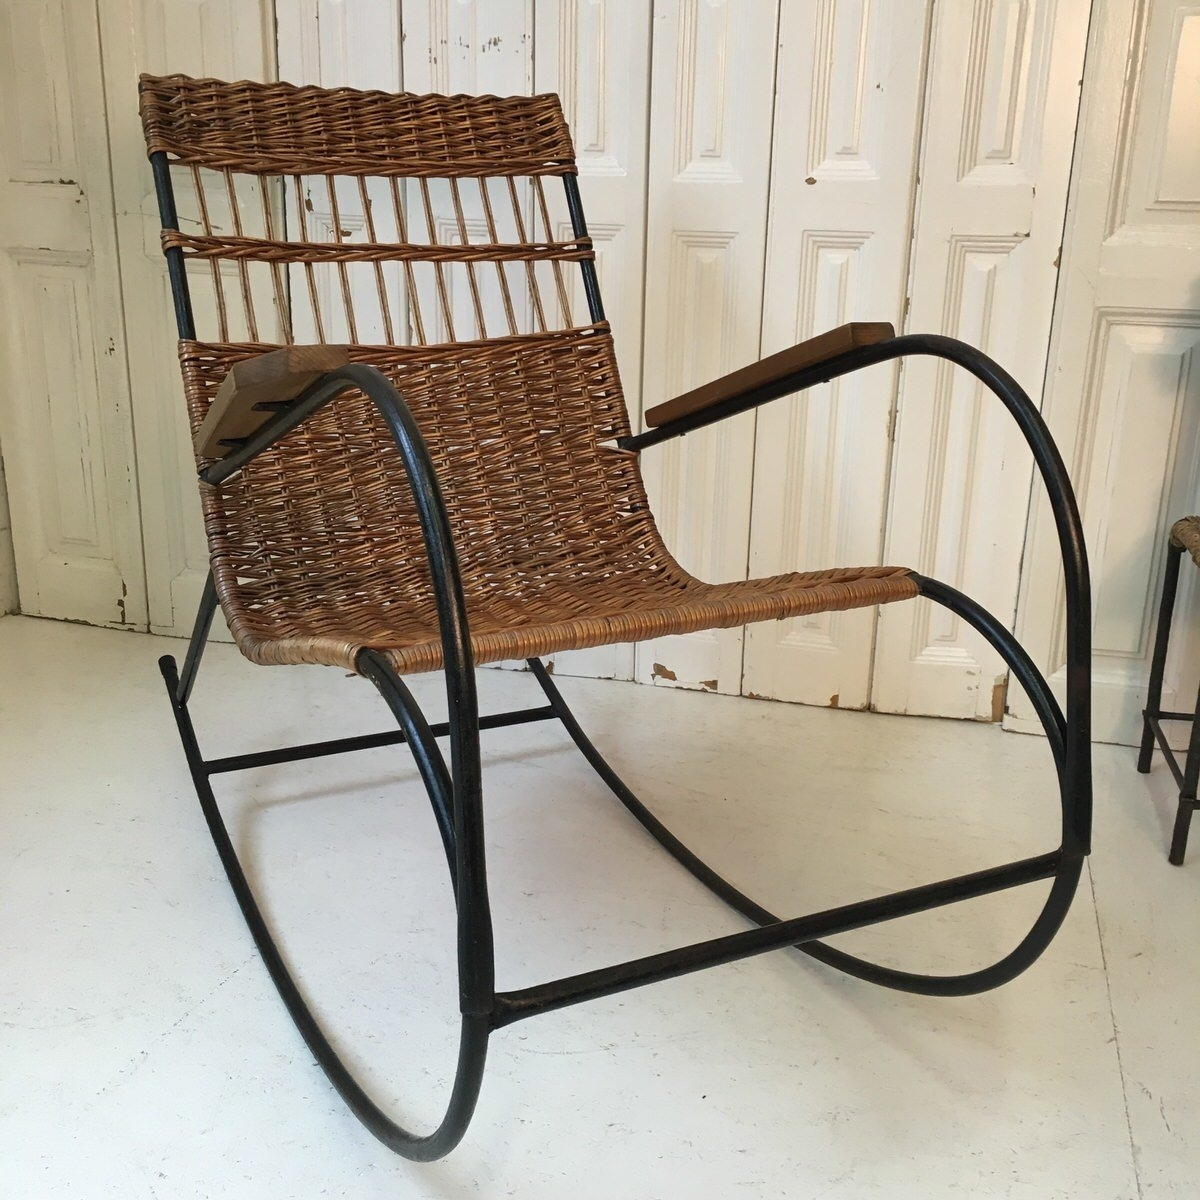 Chair | Buy Wicker Rocking Chair Antique Wicker Rocking Chair Regarding Antique Wicker Rocking Chairs (#6 of 15)